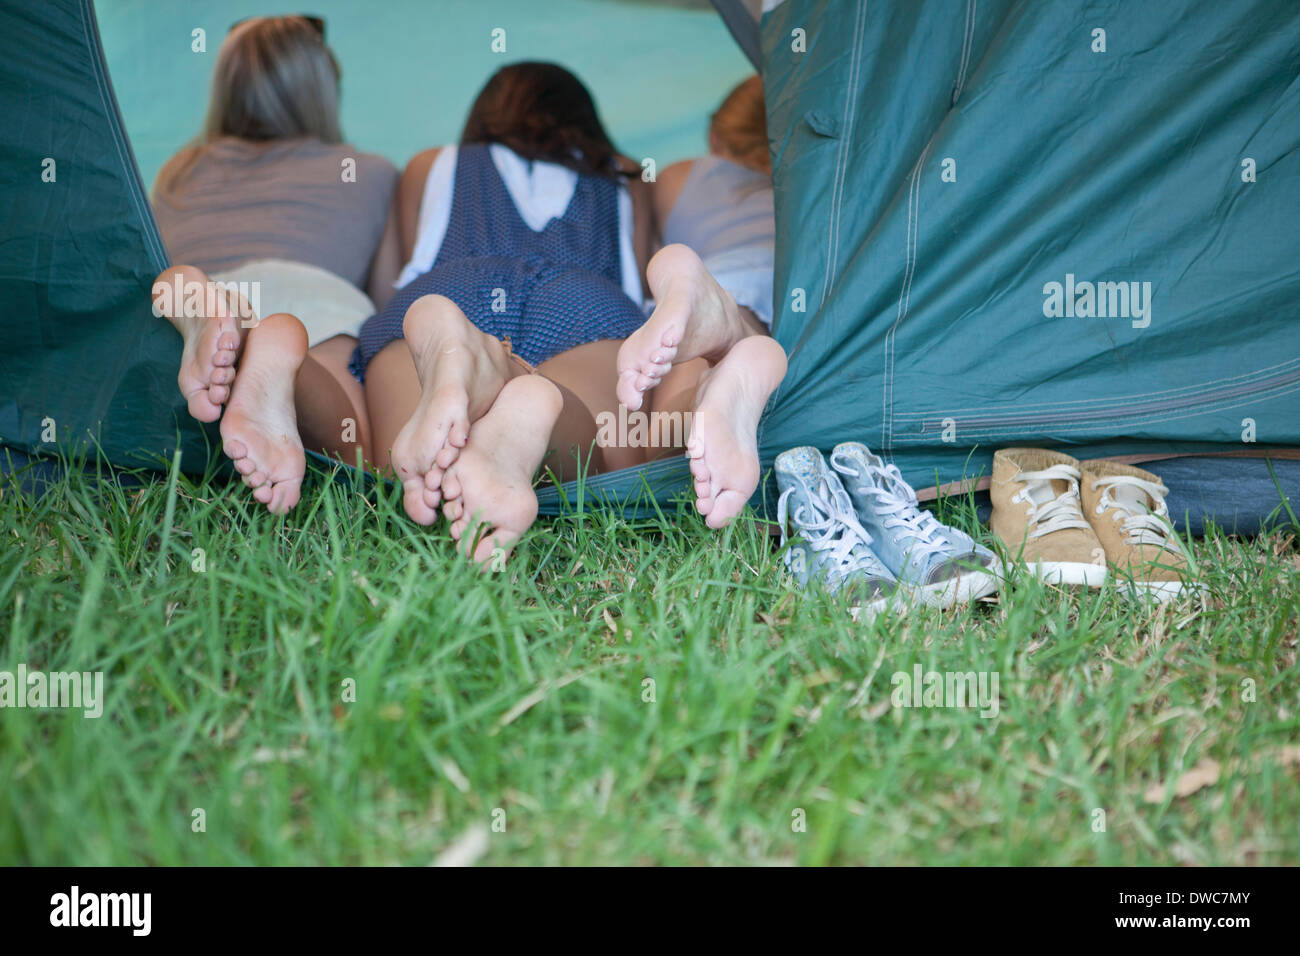 Three young females friends feet at tent entrance - Stock Image